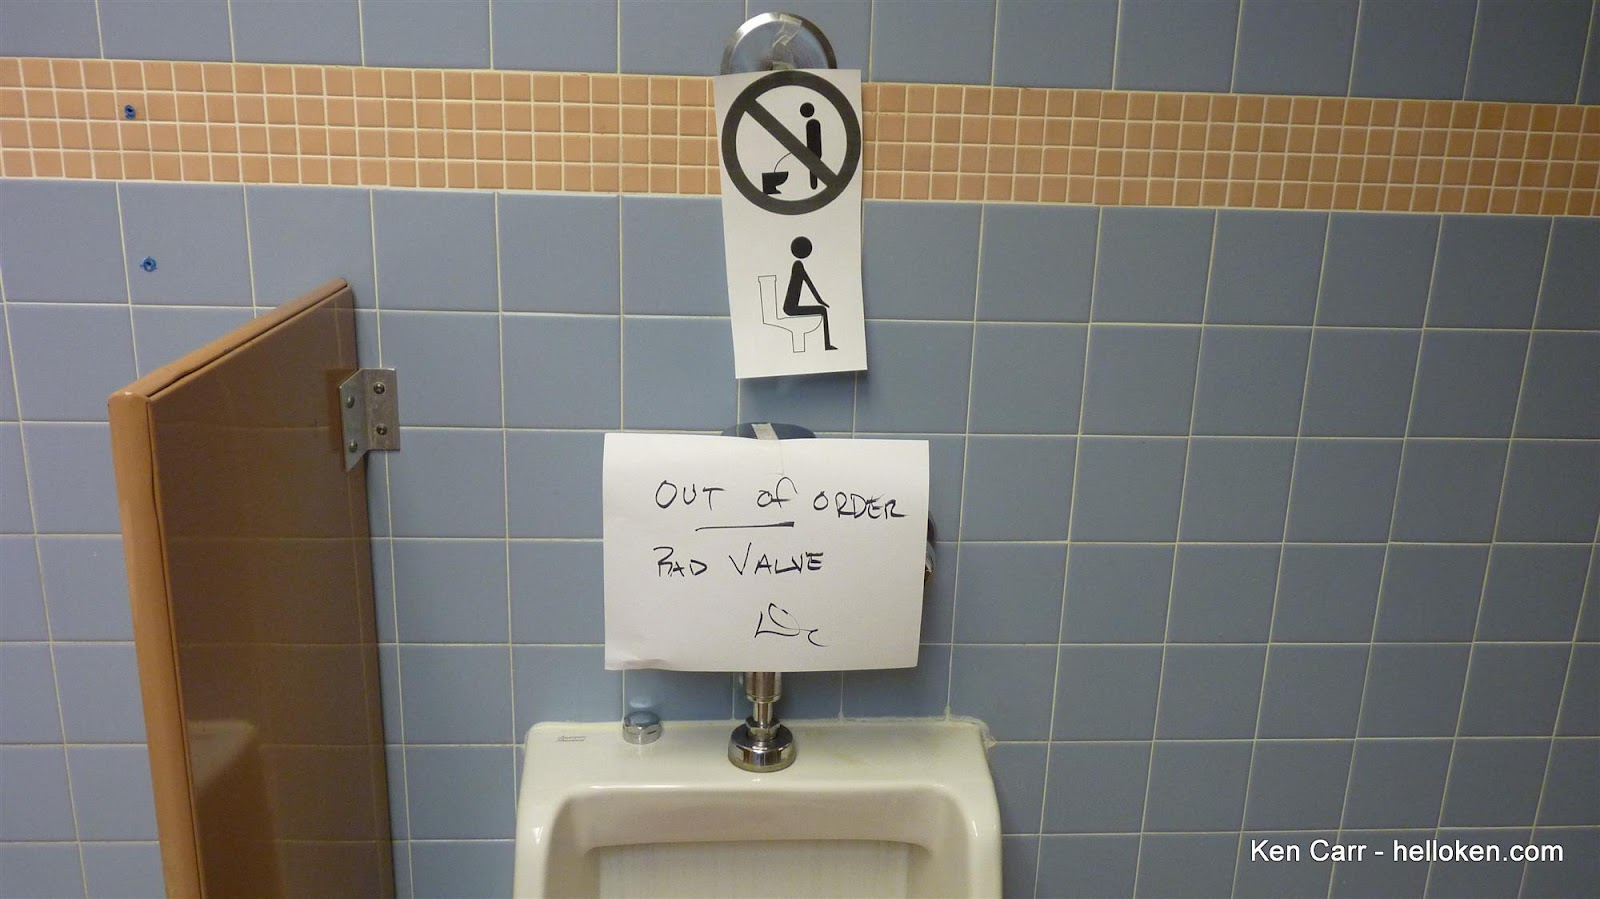 Ken Carr Blog: Signs signs everywhere there's urinal signs